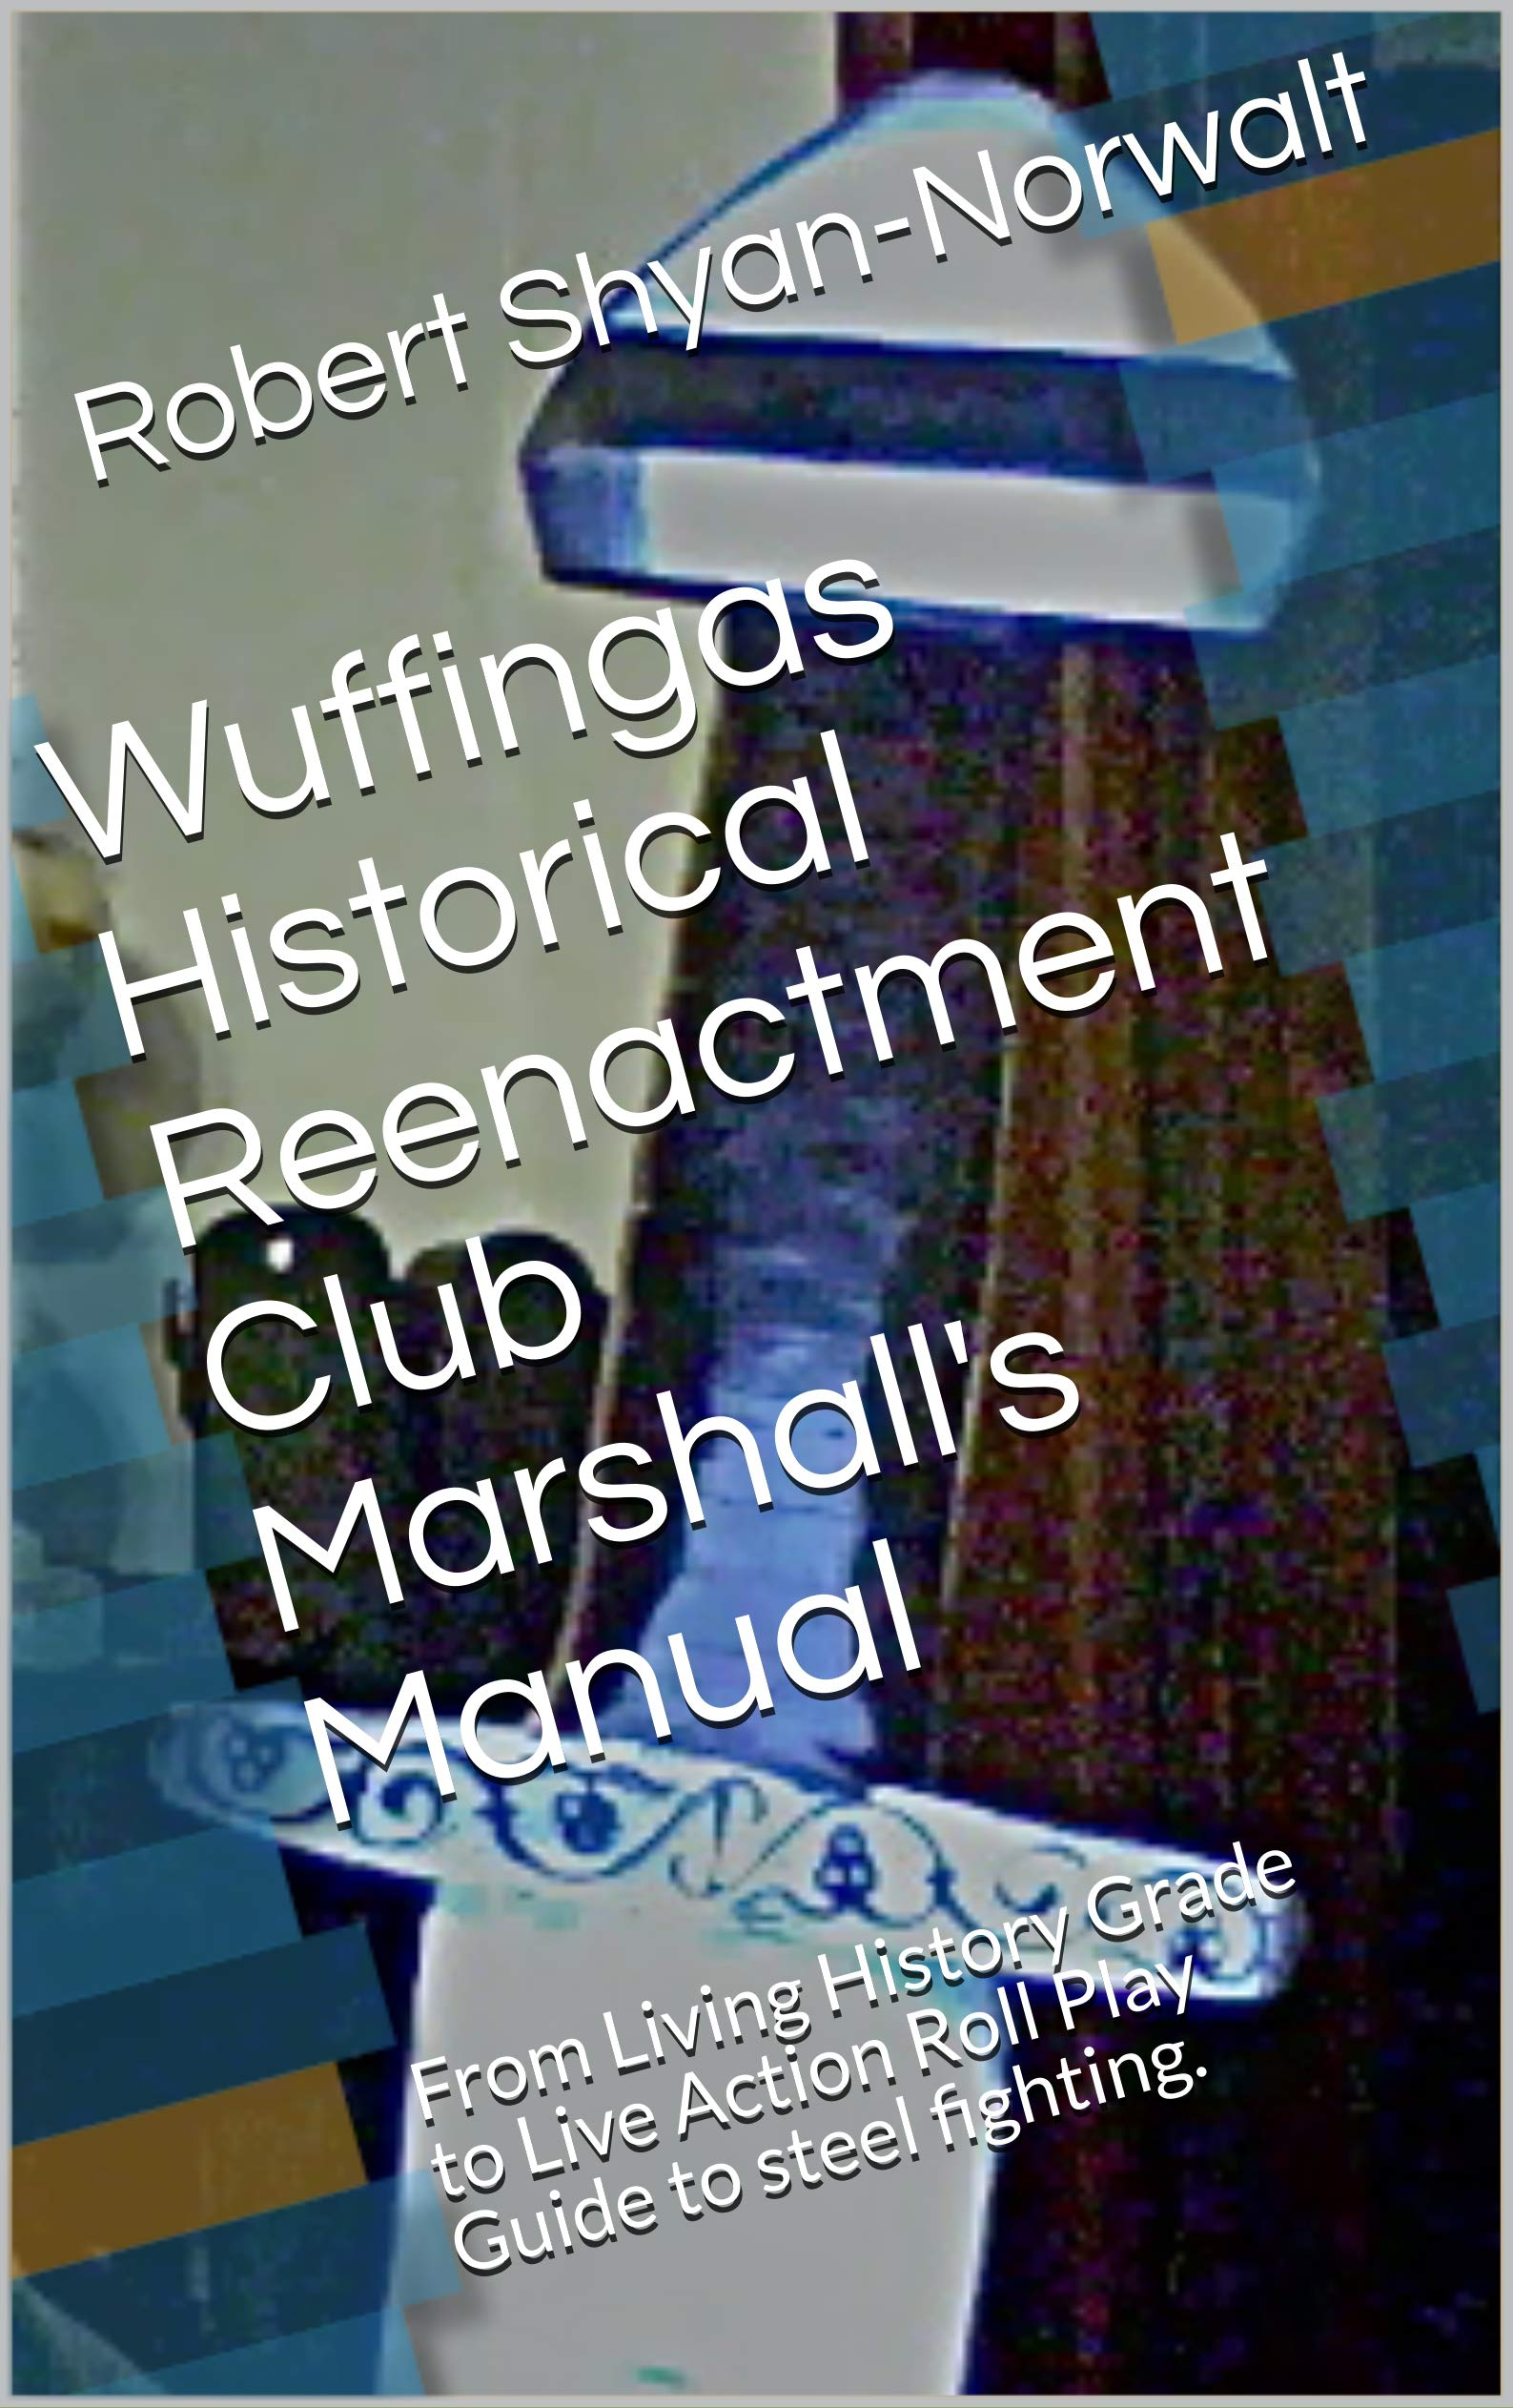 Wuffingas Historical Reenactment Club Marshall's Manual: From Living History Grade to Live Action Roll Play Guide to steel fighting.